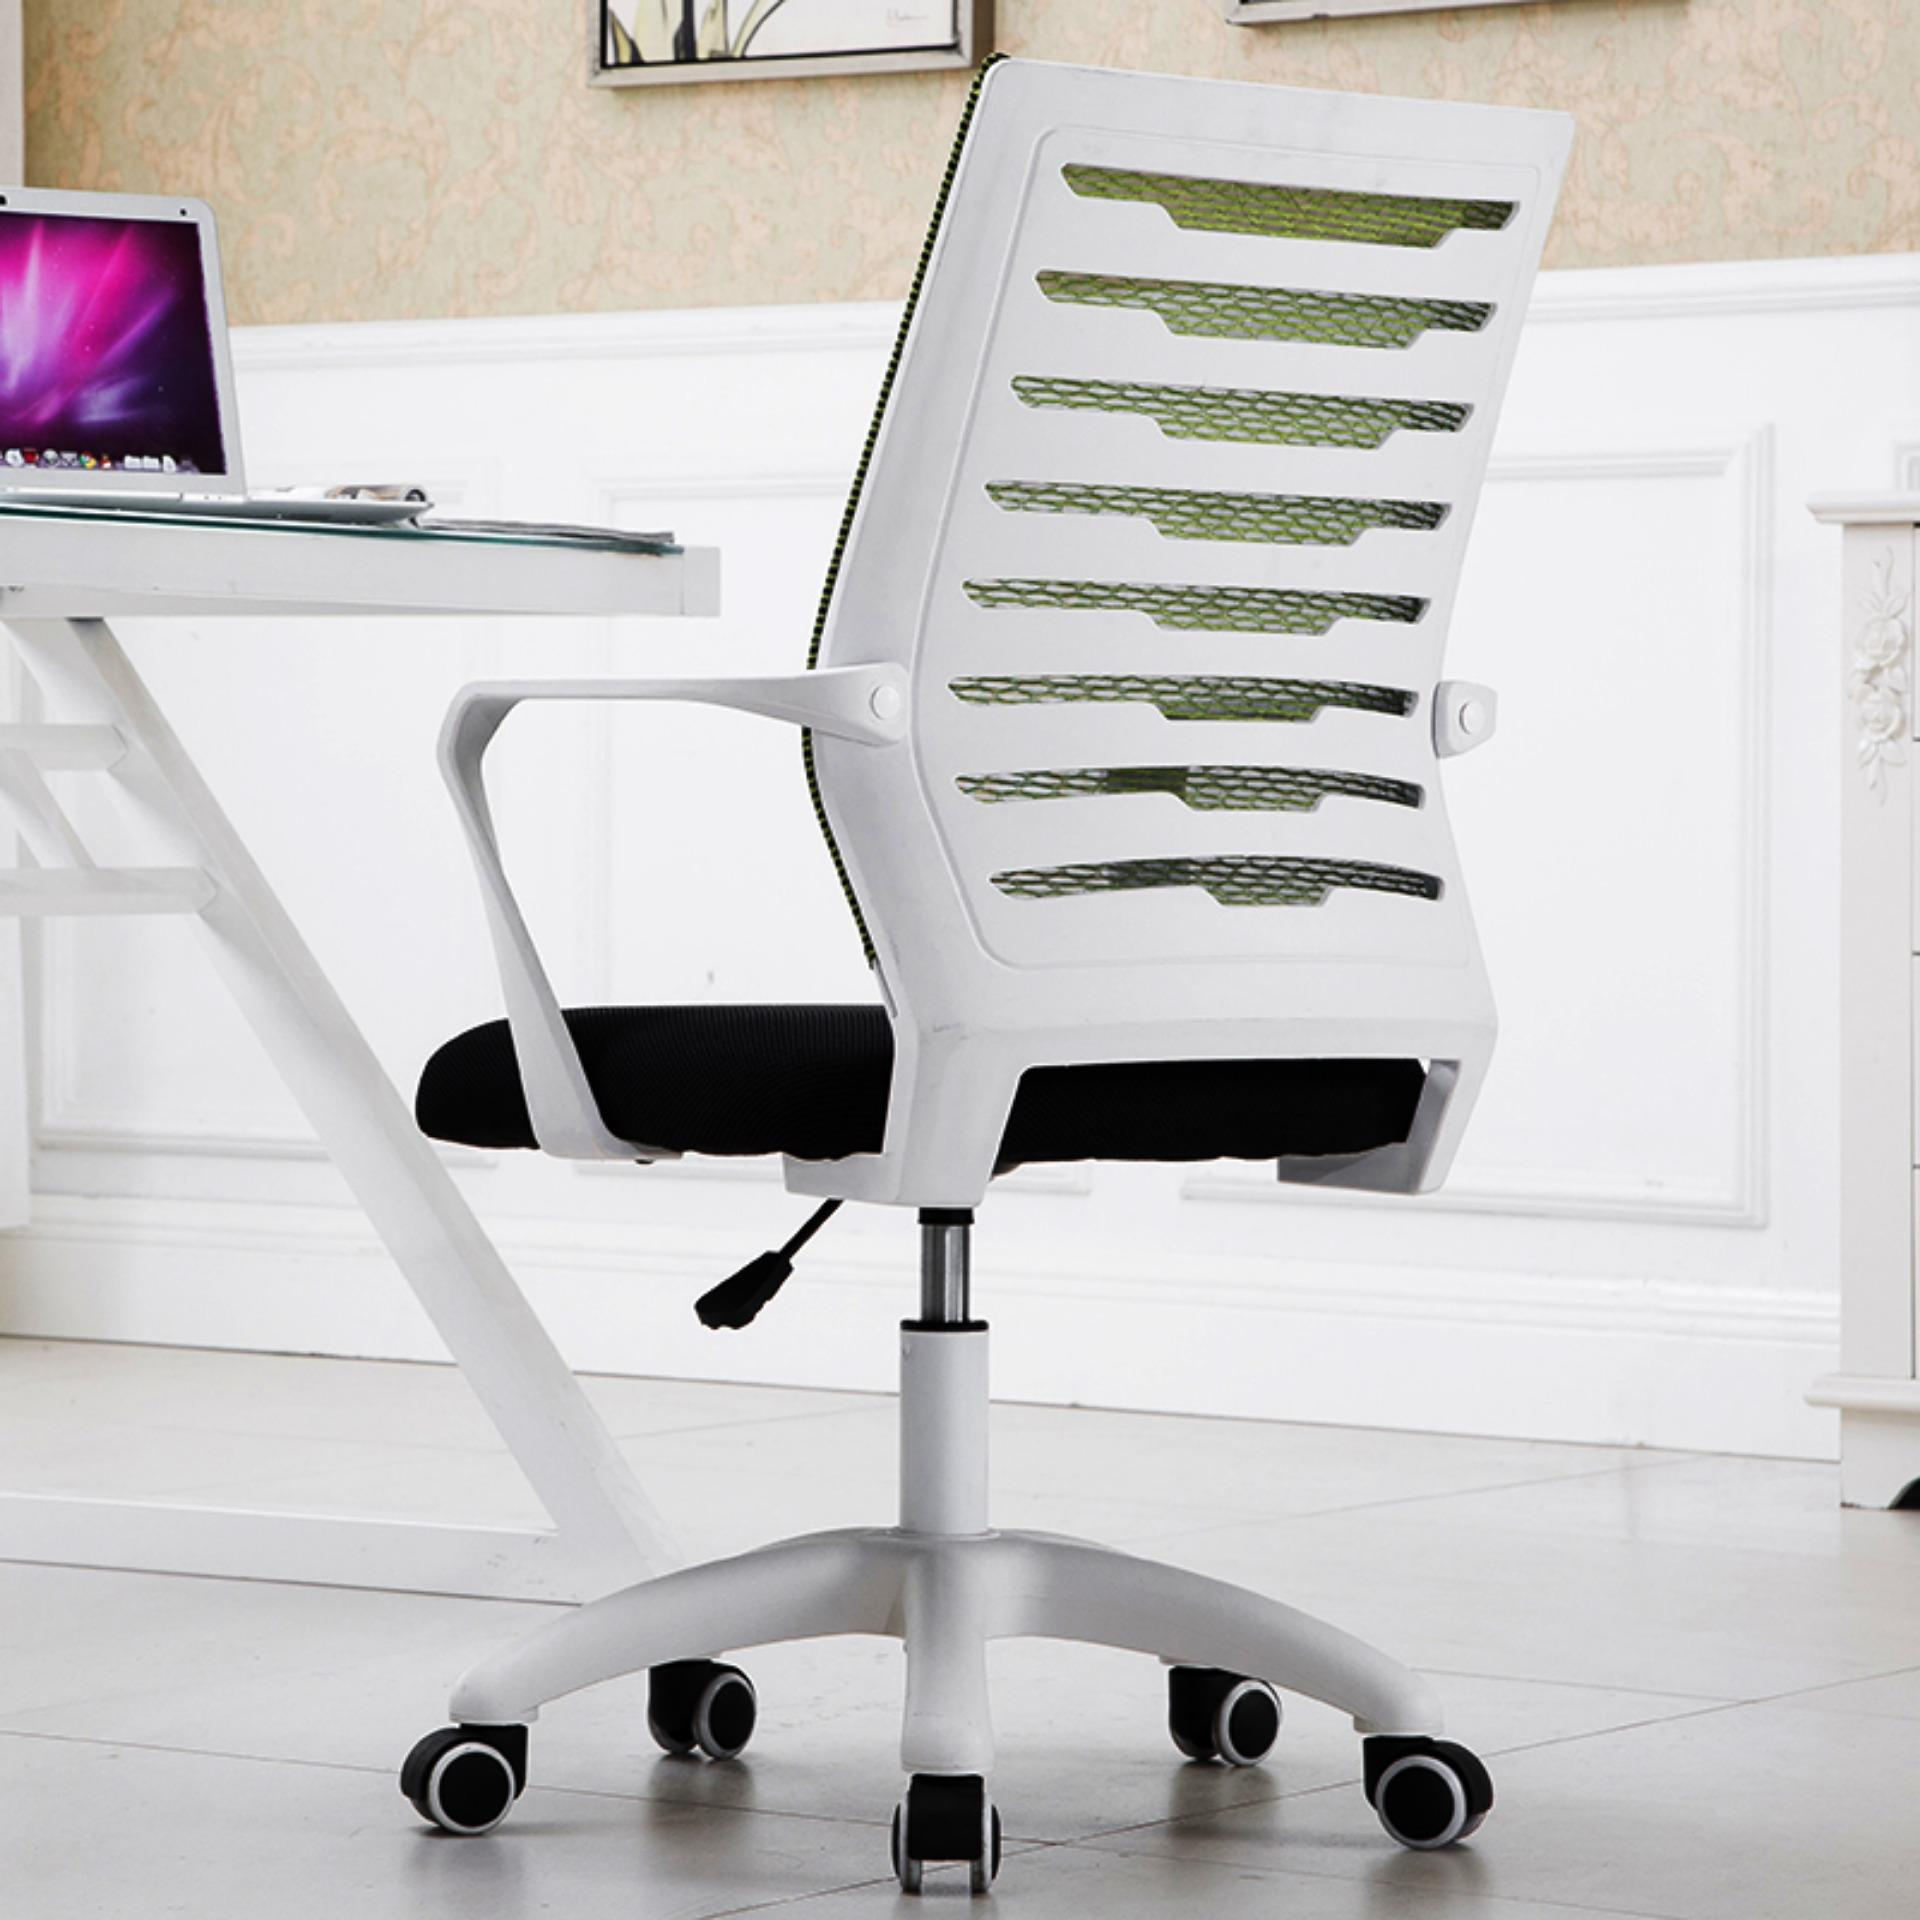 Premium Computer Chair !! Ergonomics Design Best Buy for Home/ Office! Singapore & Premium Computer Chair !! Ergonomics Design Best Buy for Home ...